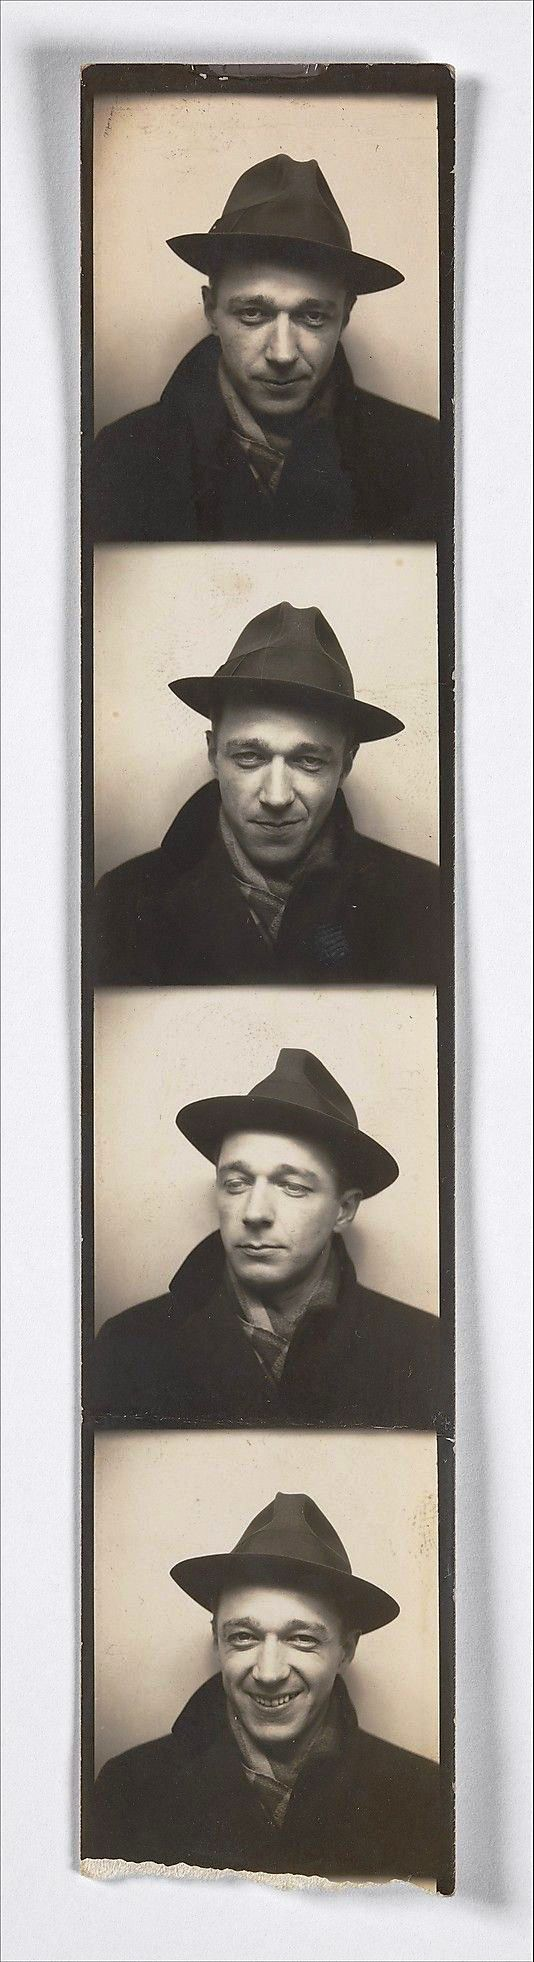 Walker Evans, Self-Portrait in Automated Photobooth, 1930's   -   Metropolitan Museum of Art